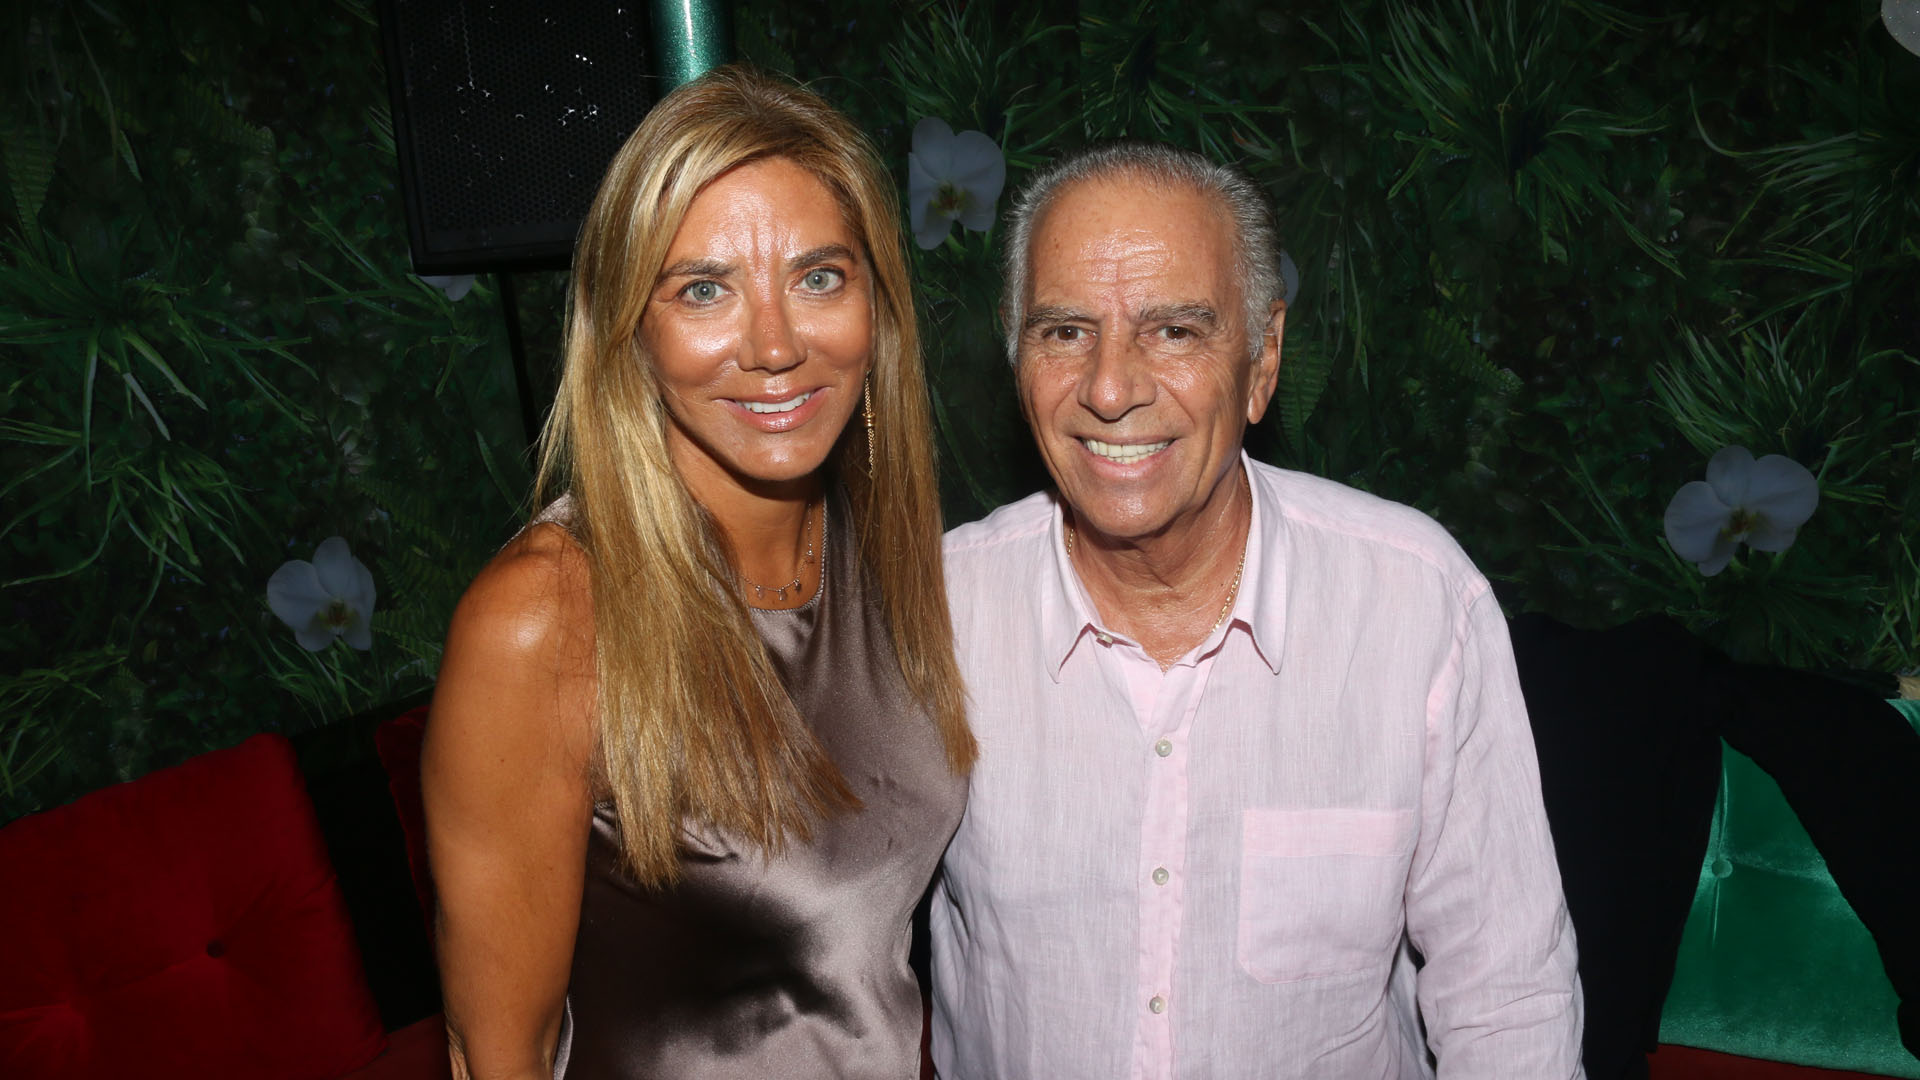 Bettina y Alejandro Bulgheroni